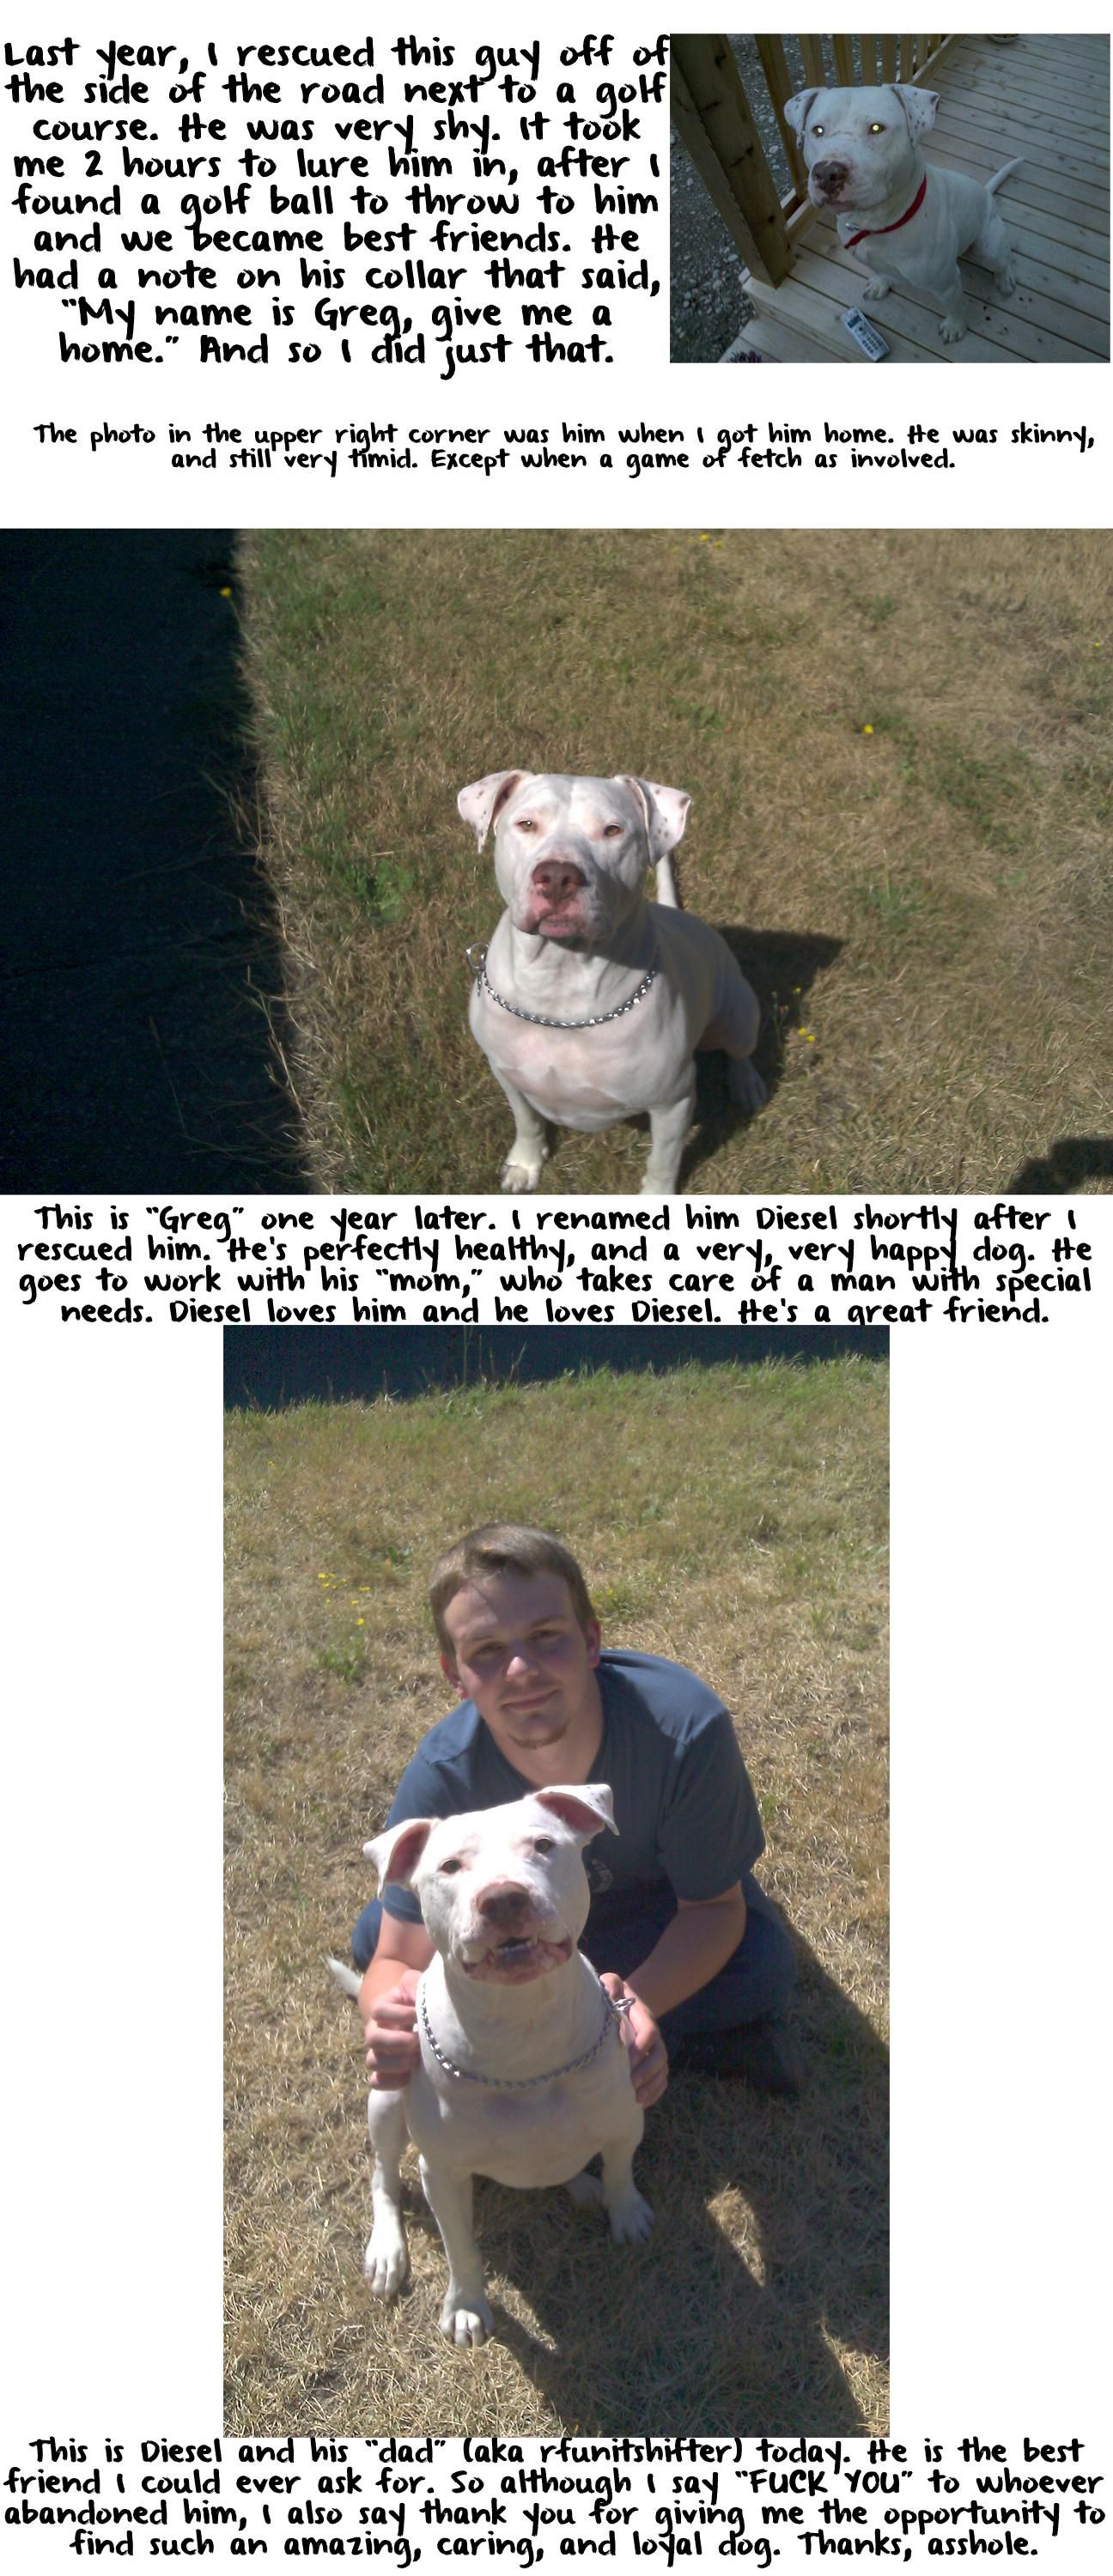 Stories with animals always make me teary.